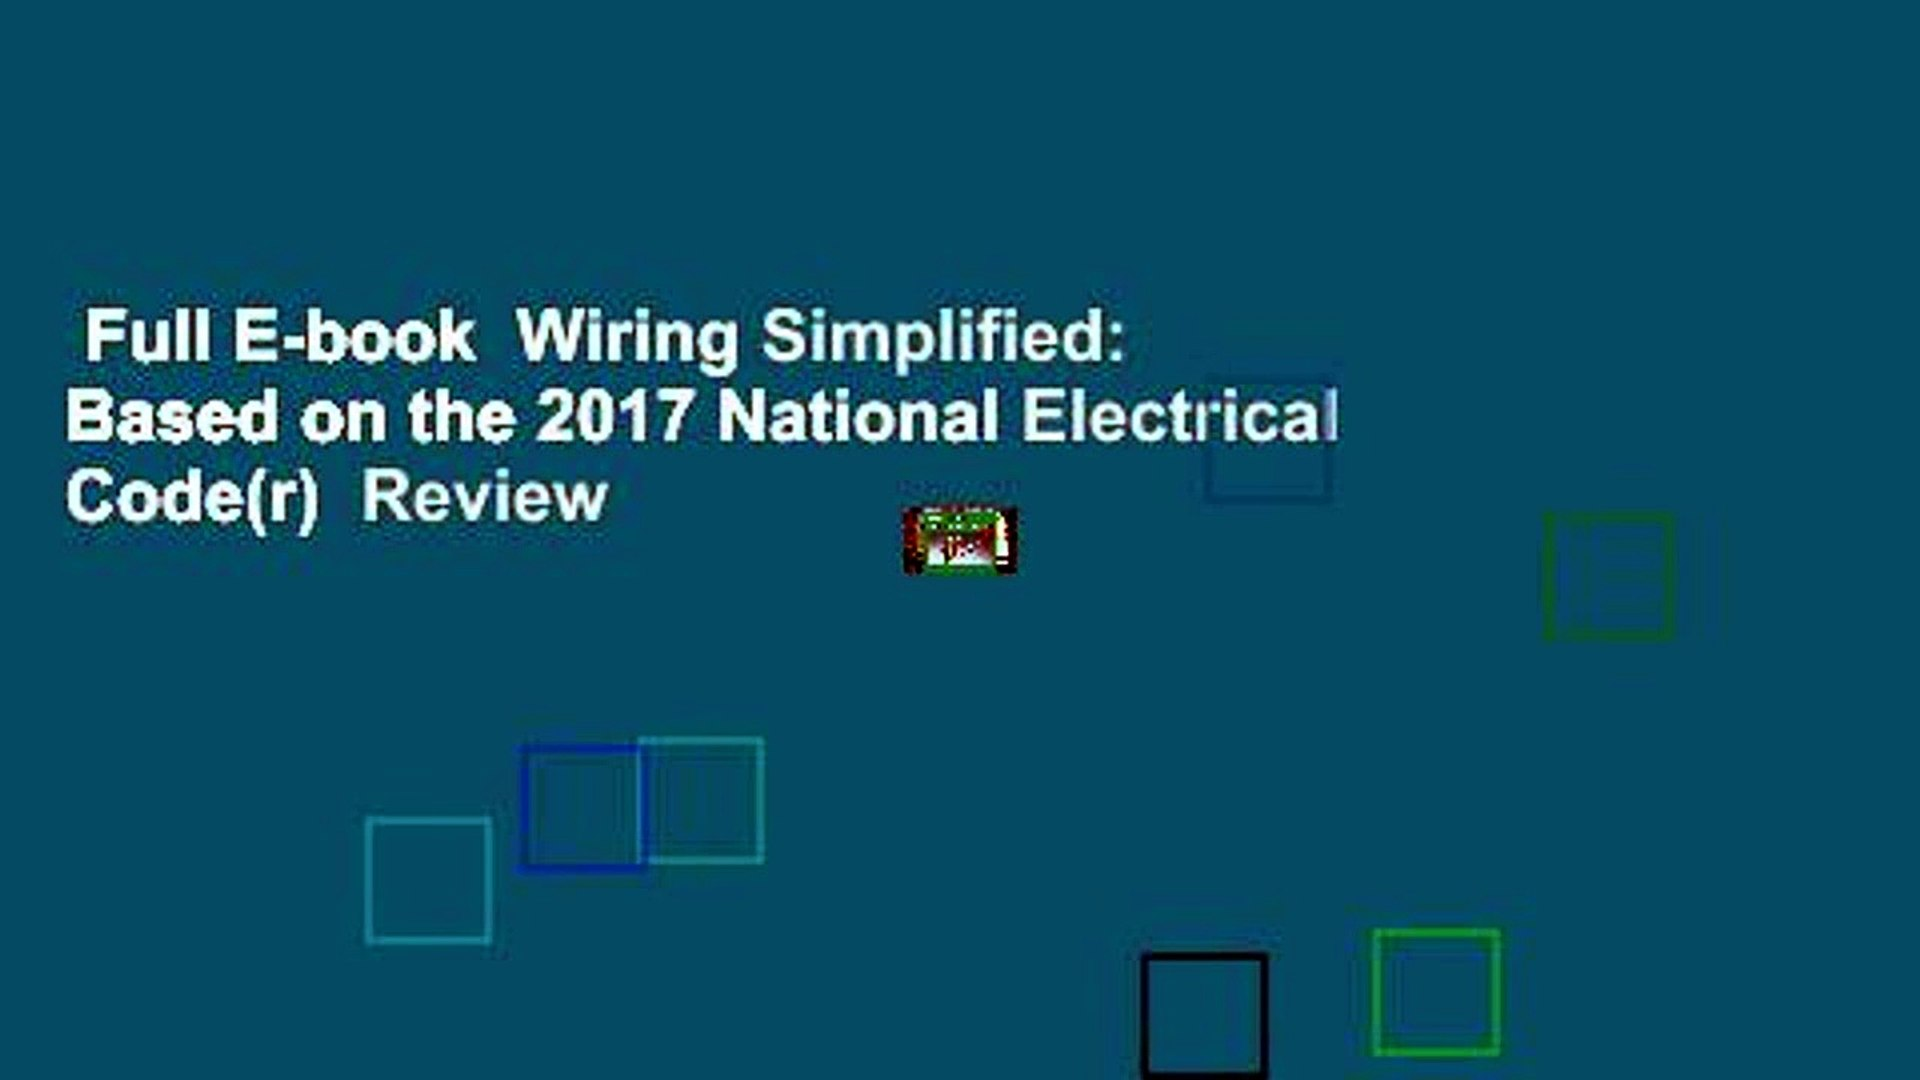 Full E-book Wiring Simplified: Based on the 2017 National Electrical on